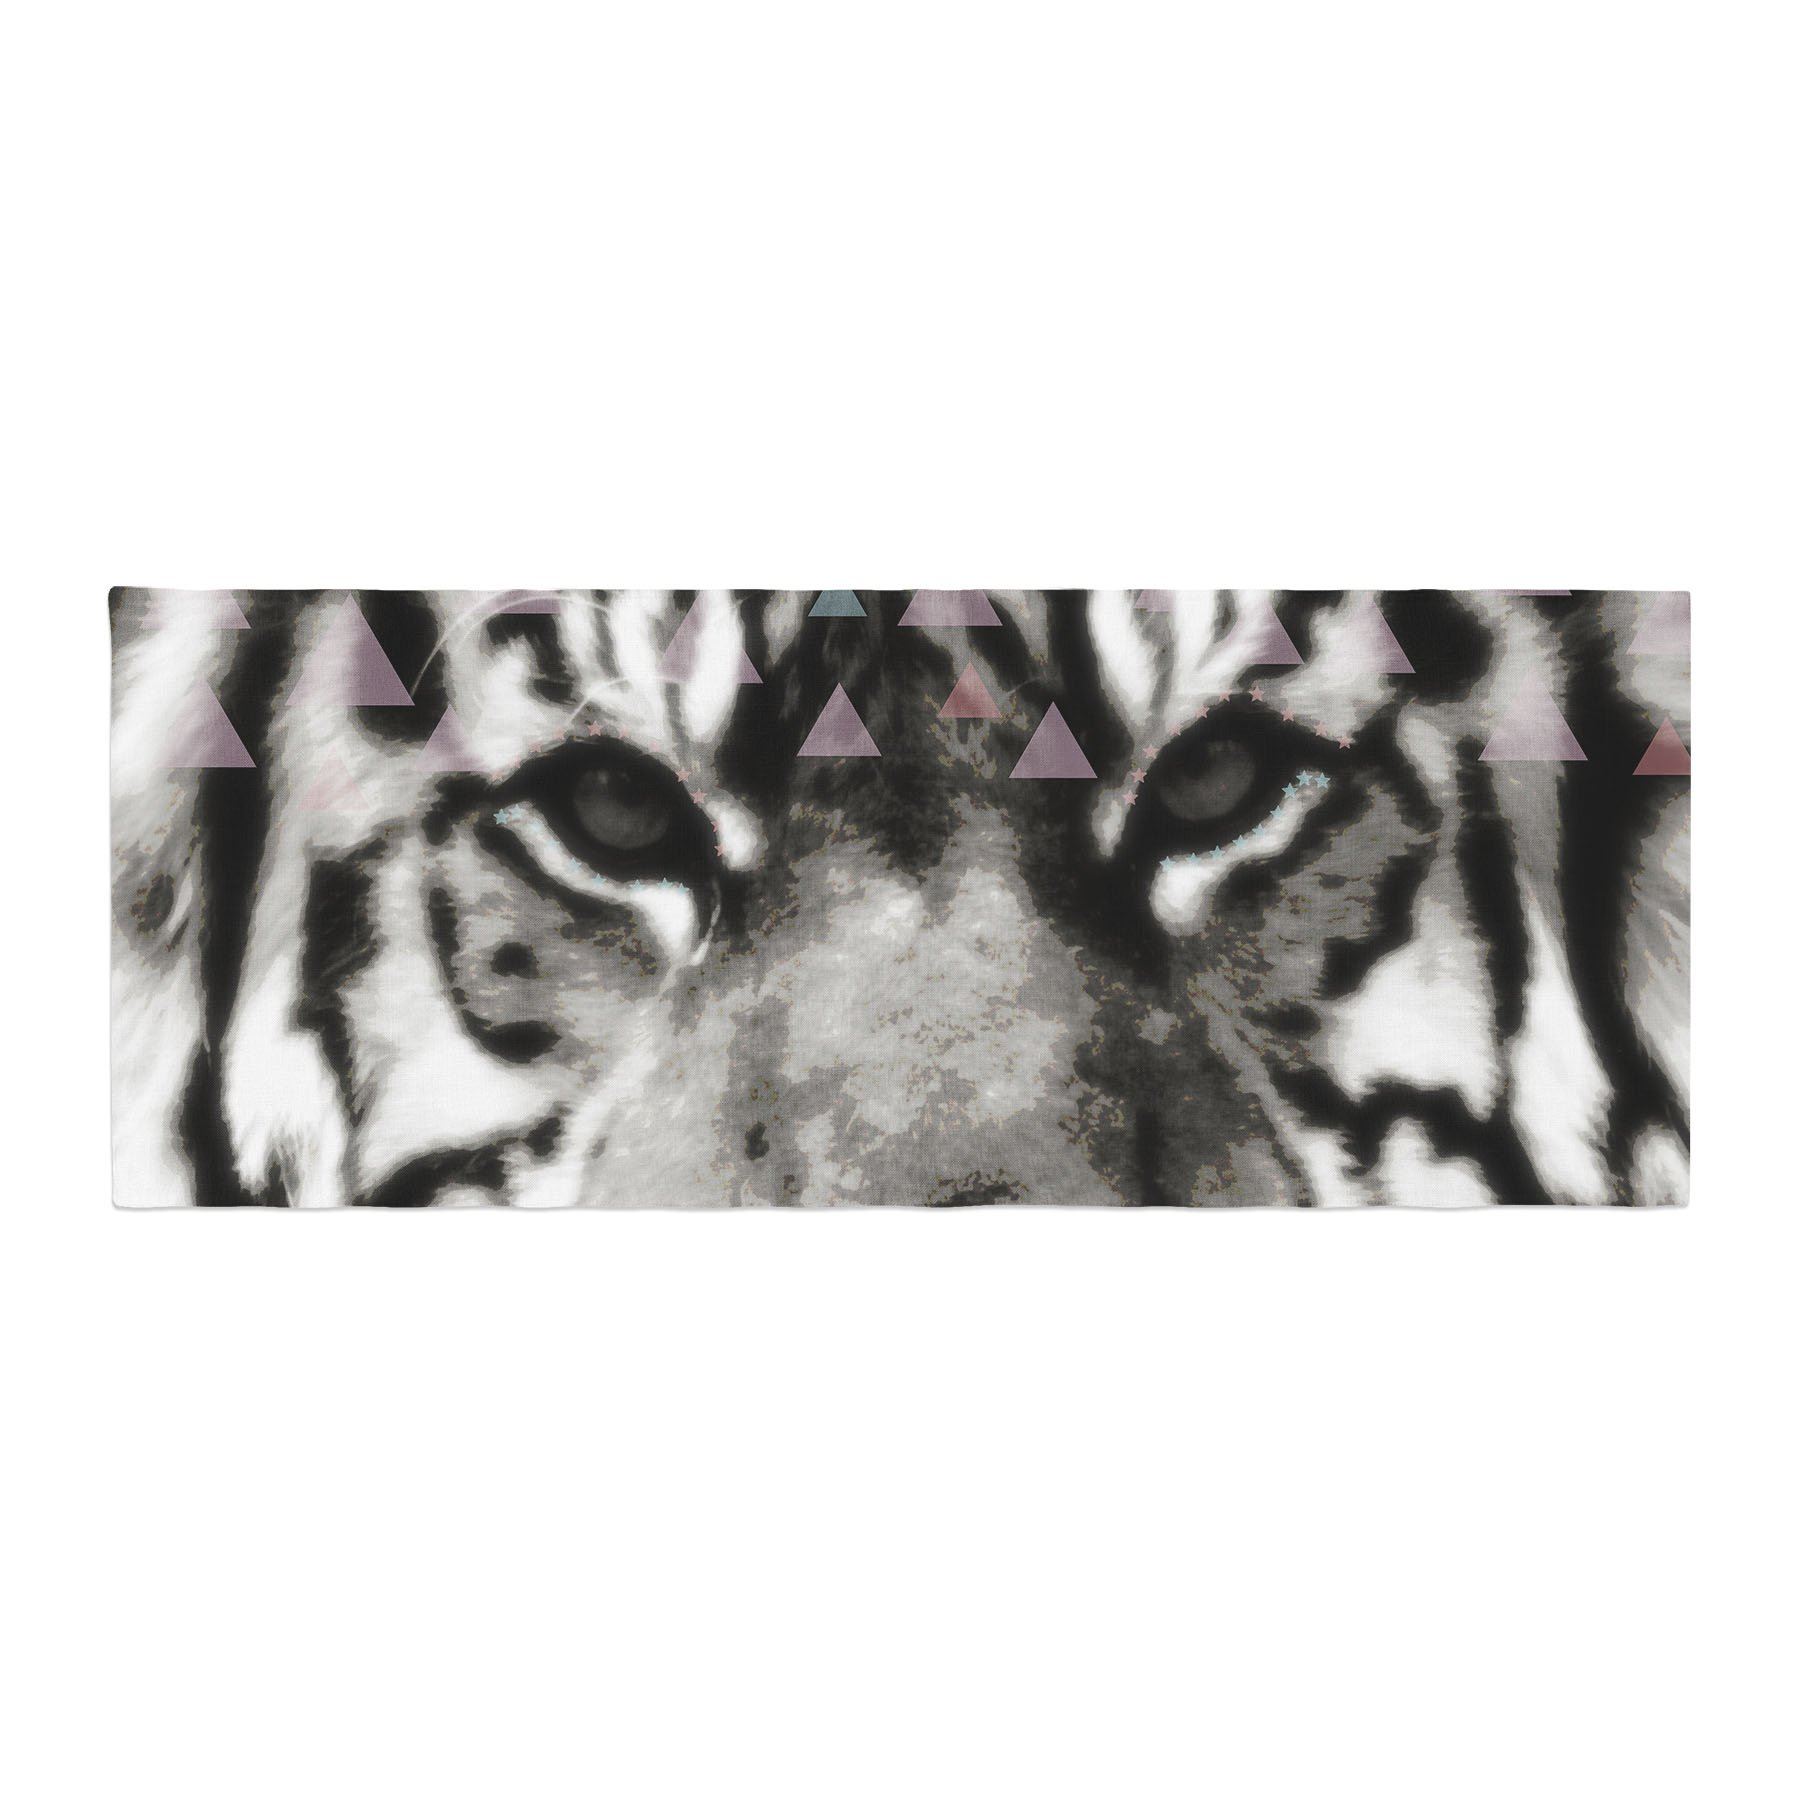 Kess InHouse Suzanne Carter Tiger Face Gray Animal Bed Runner, 34'' x 86'' by Kess InHouse (Image #1)